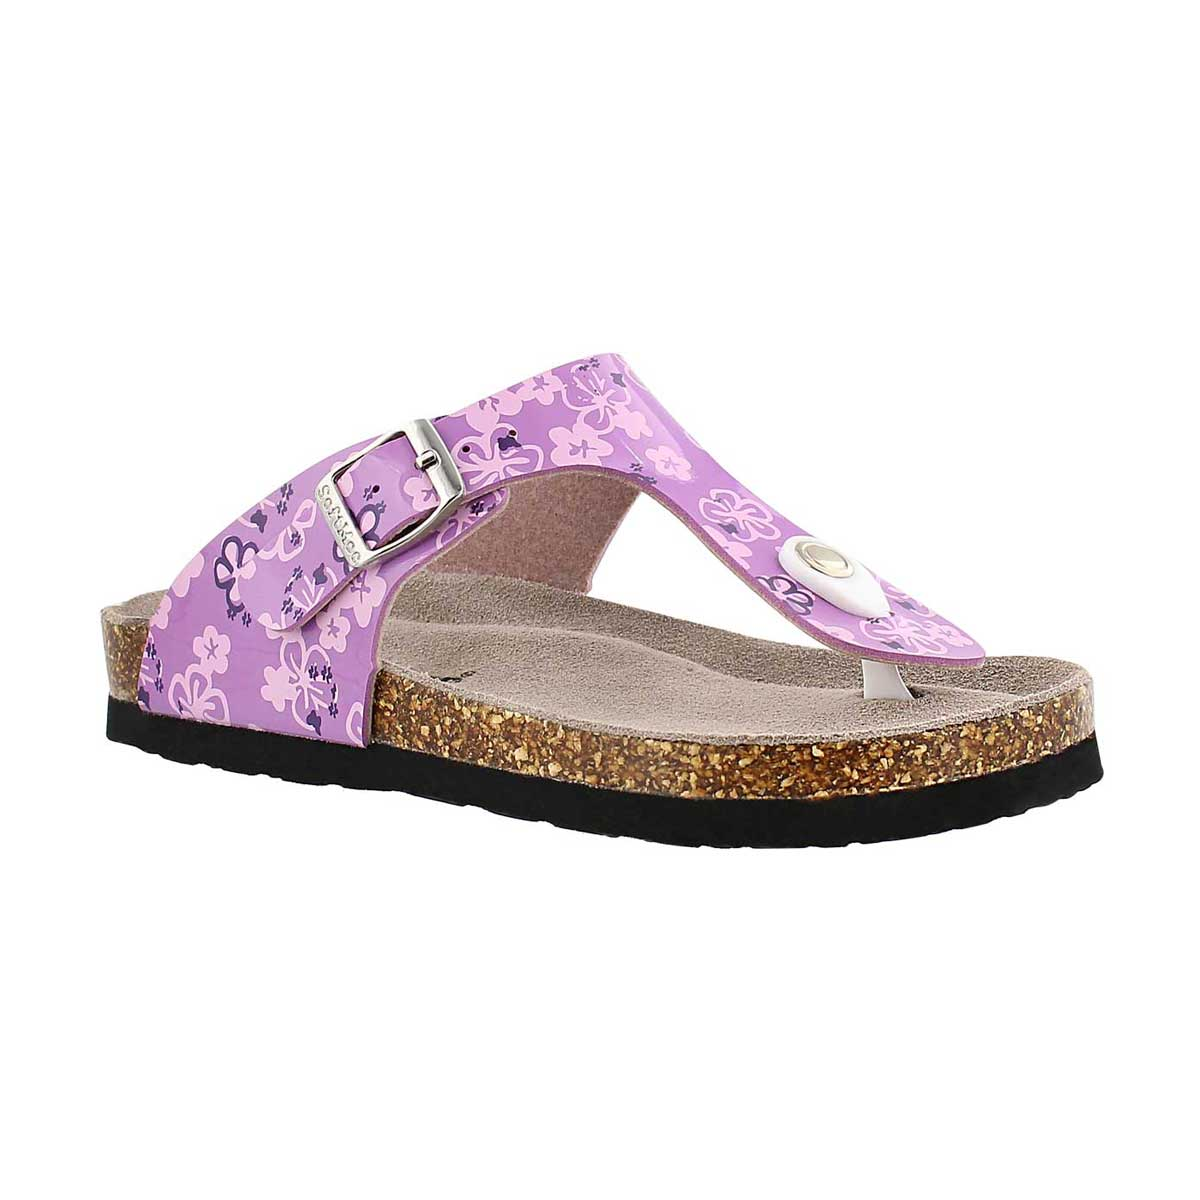 Girls' ALISON 2 purple print thong sandals